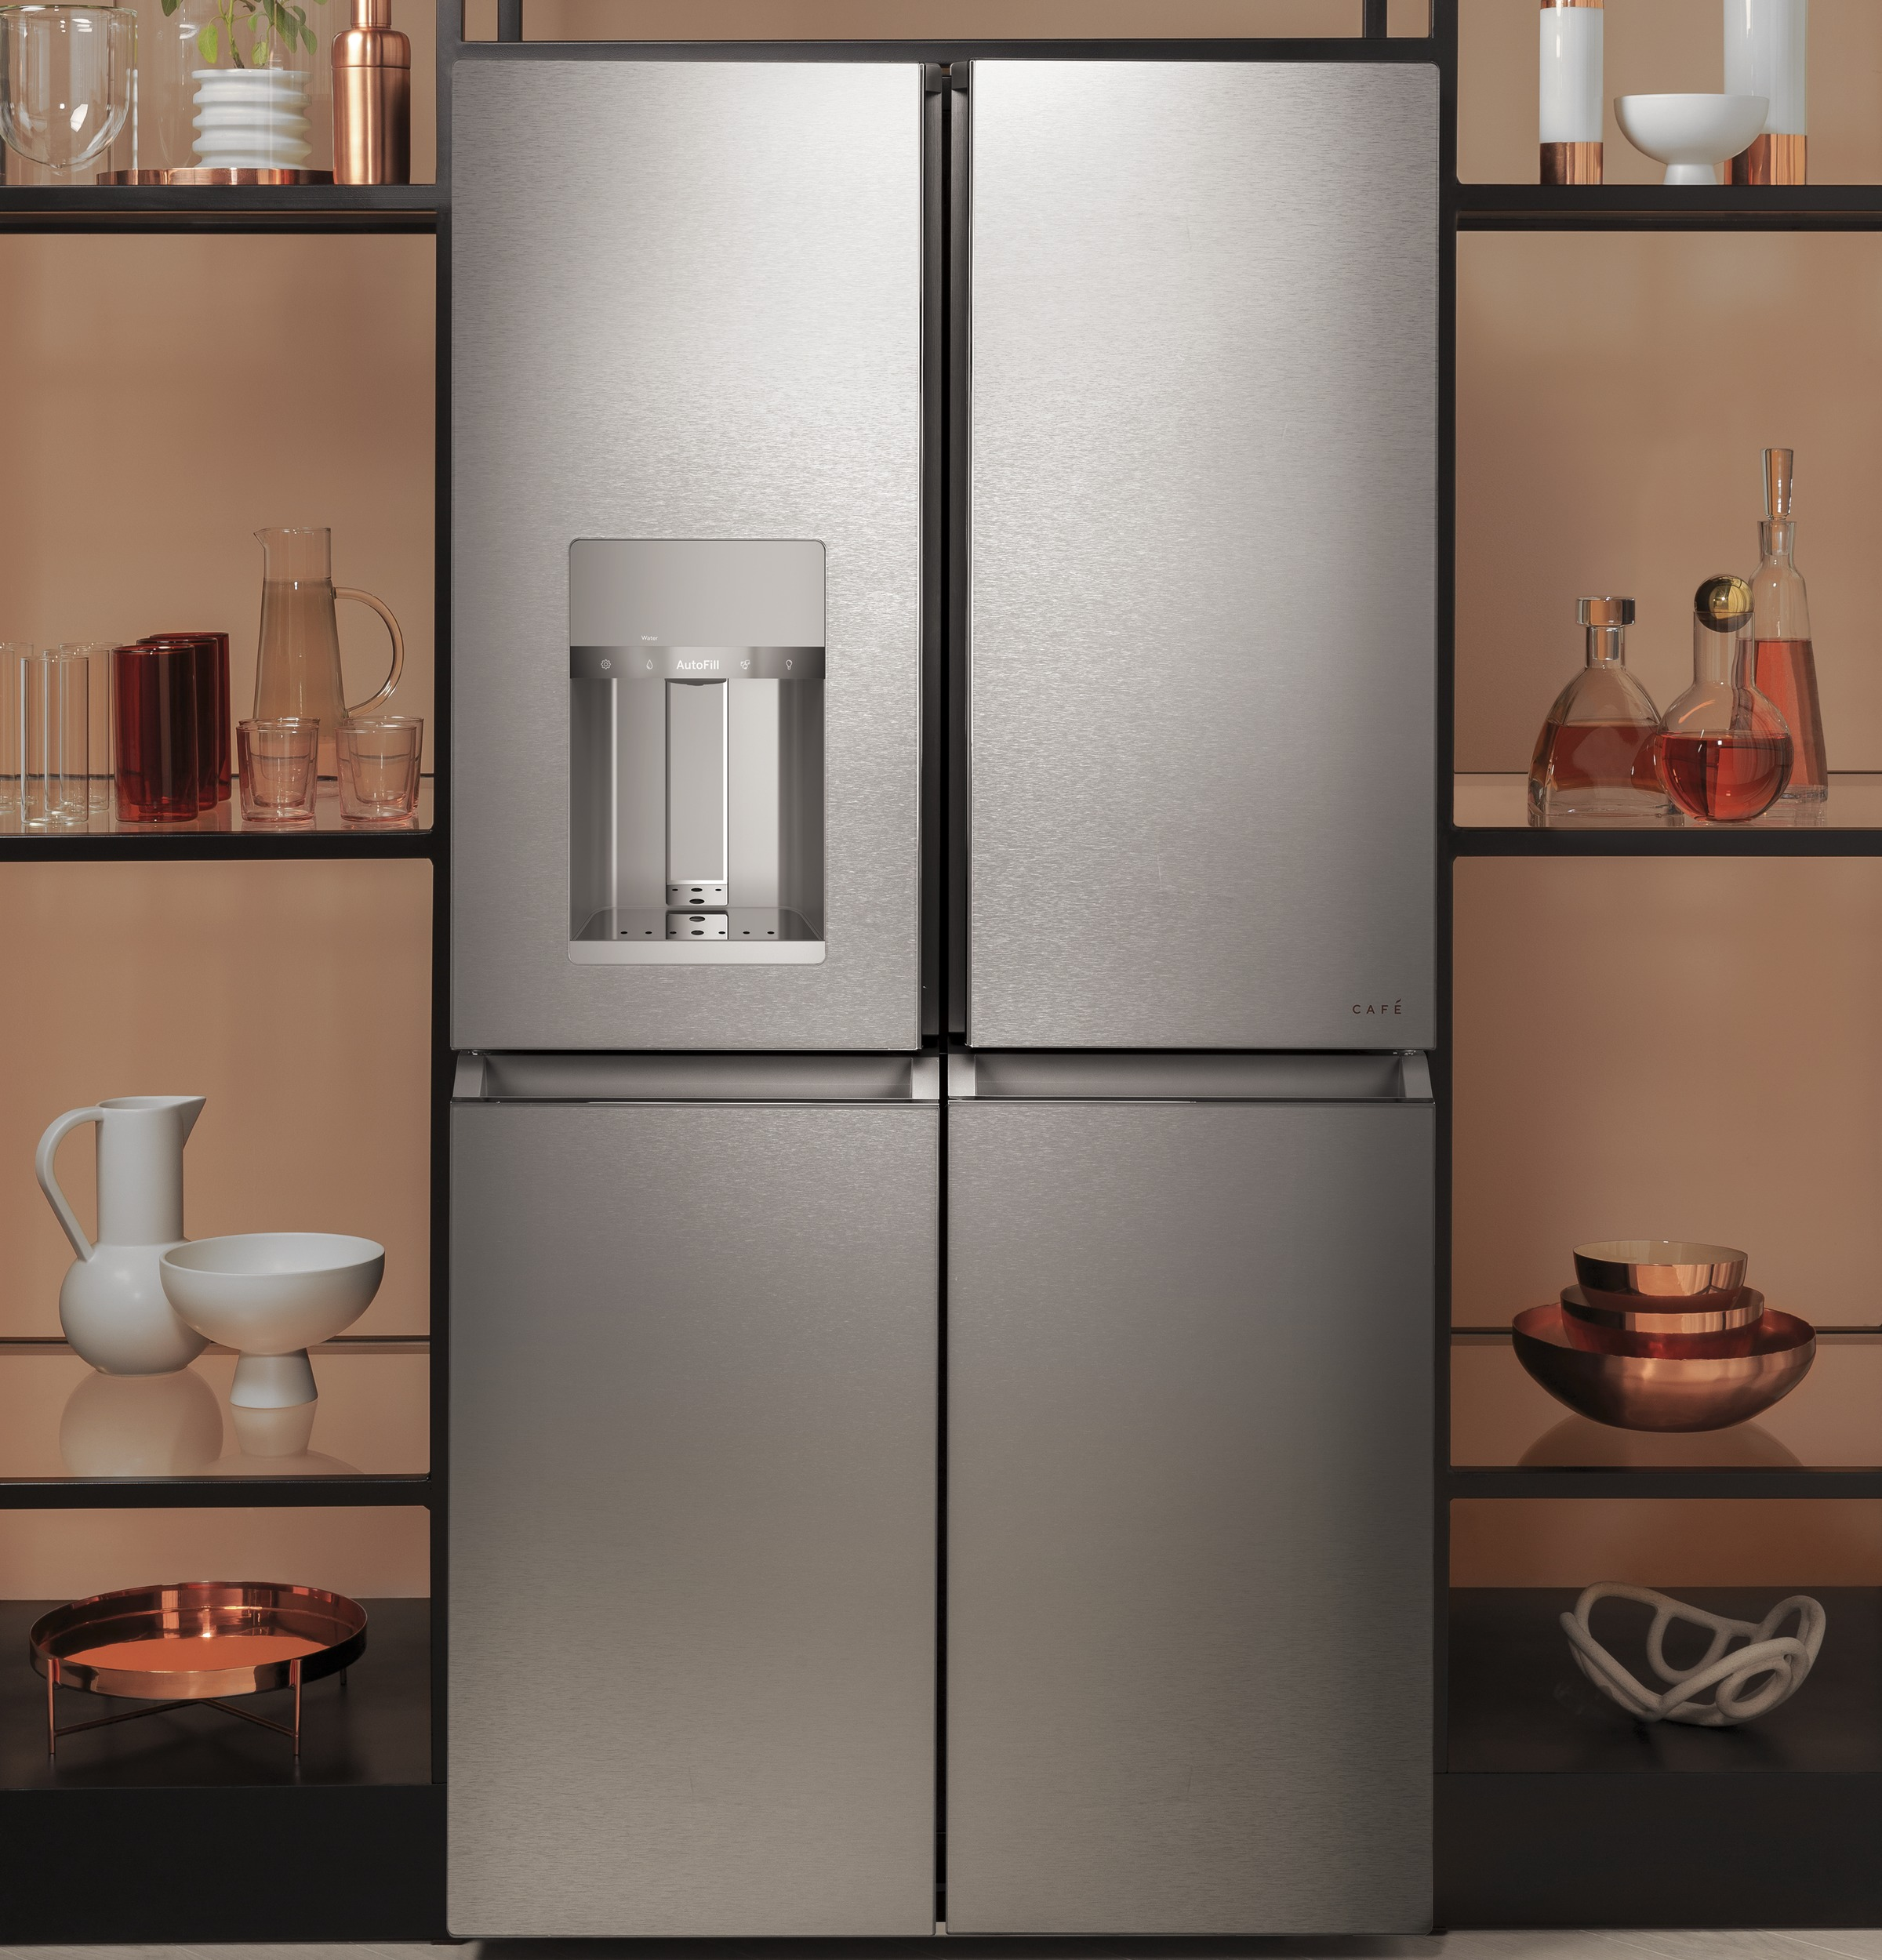 Smart Quad-Door Refrigerator